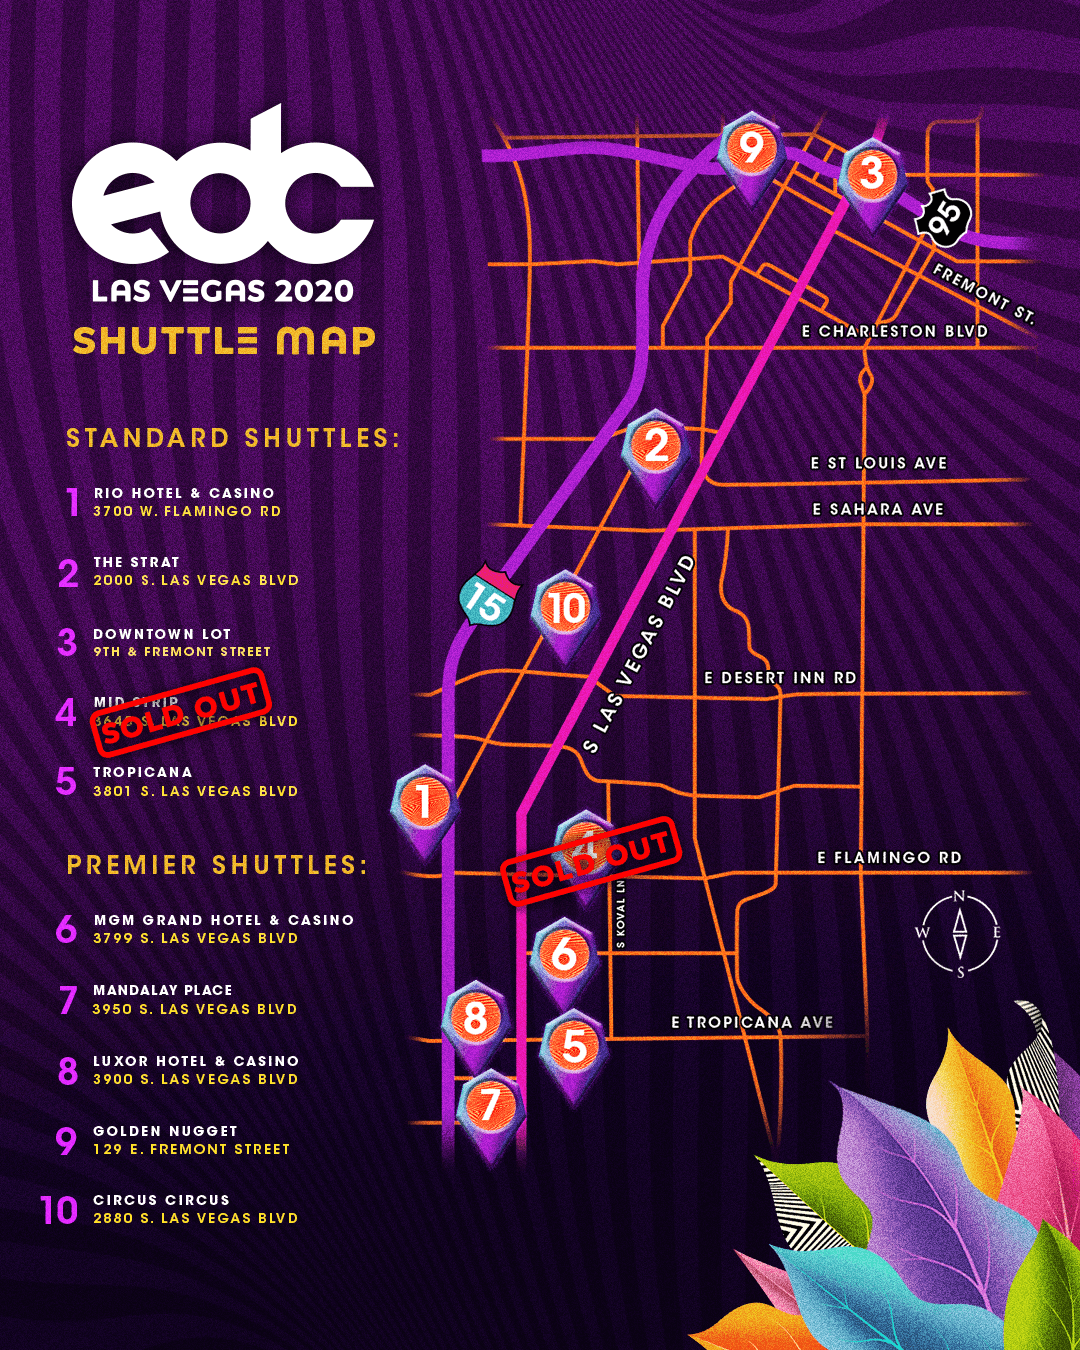 EDC Las Vegas shuttle map